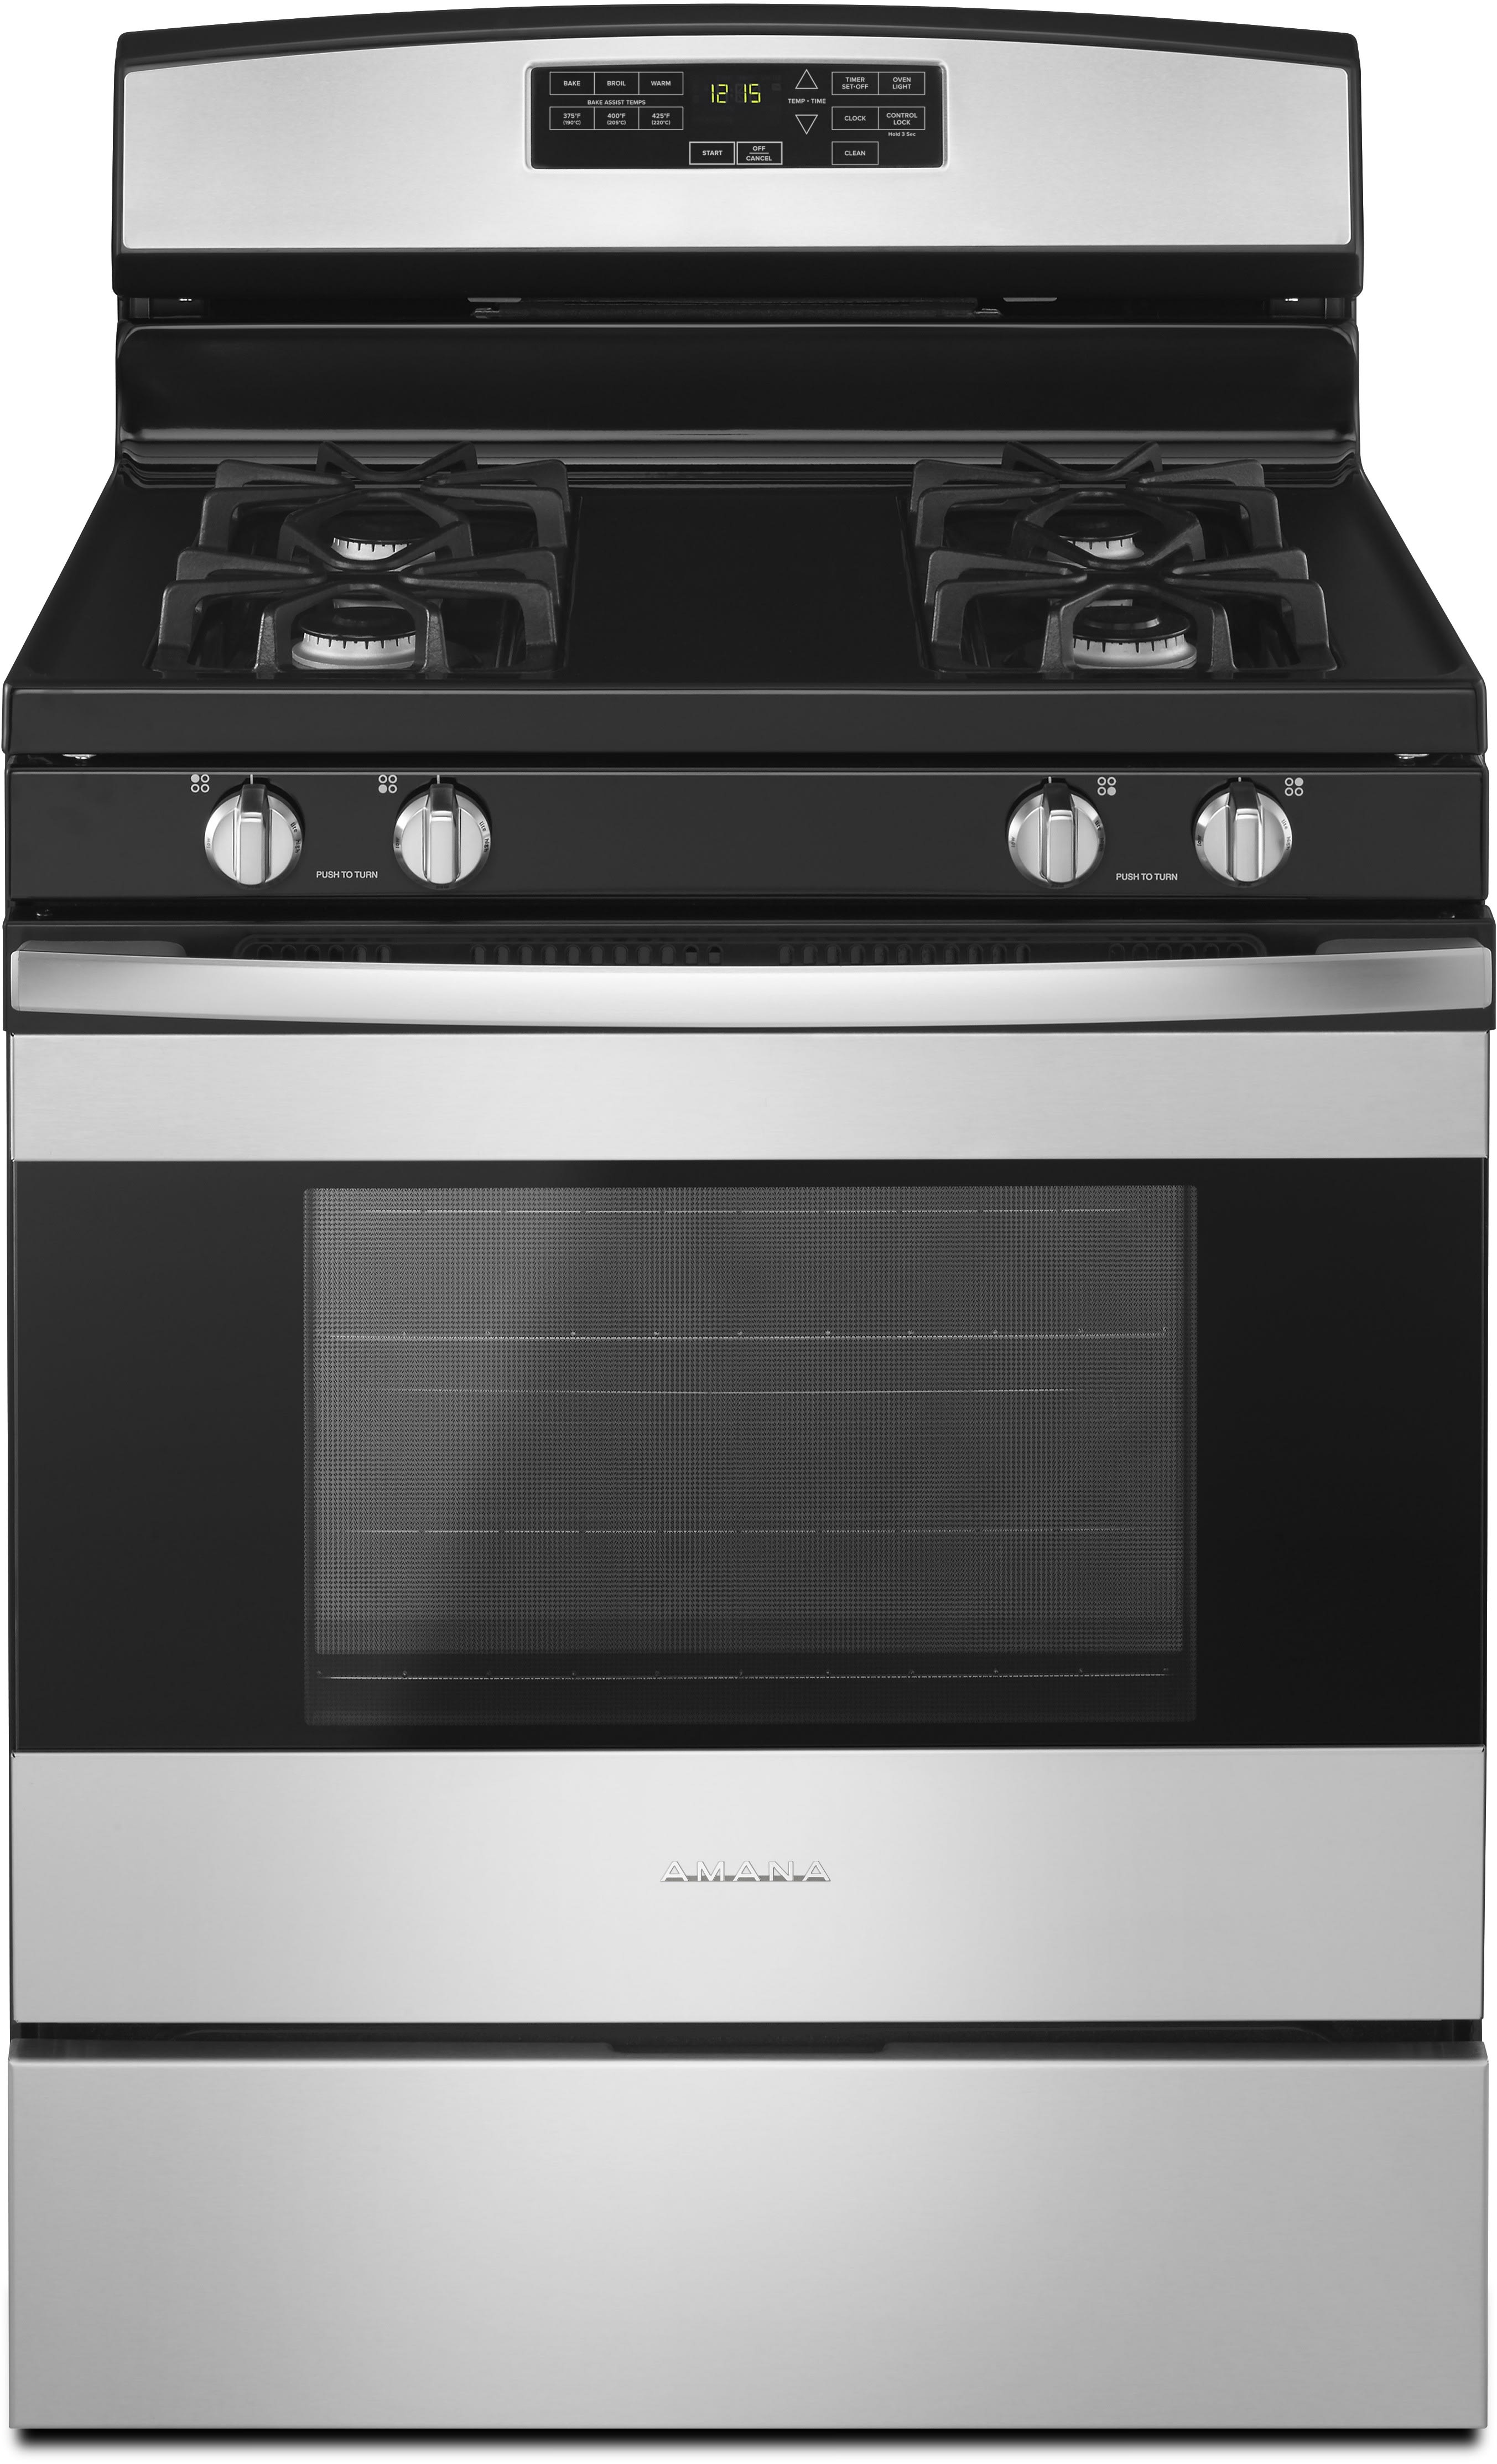 amana agr6603sfs 30 inch gas range with bake assist temperatures